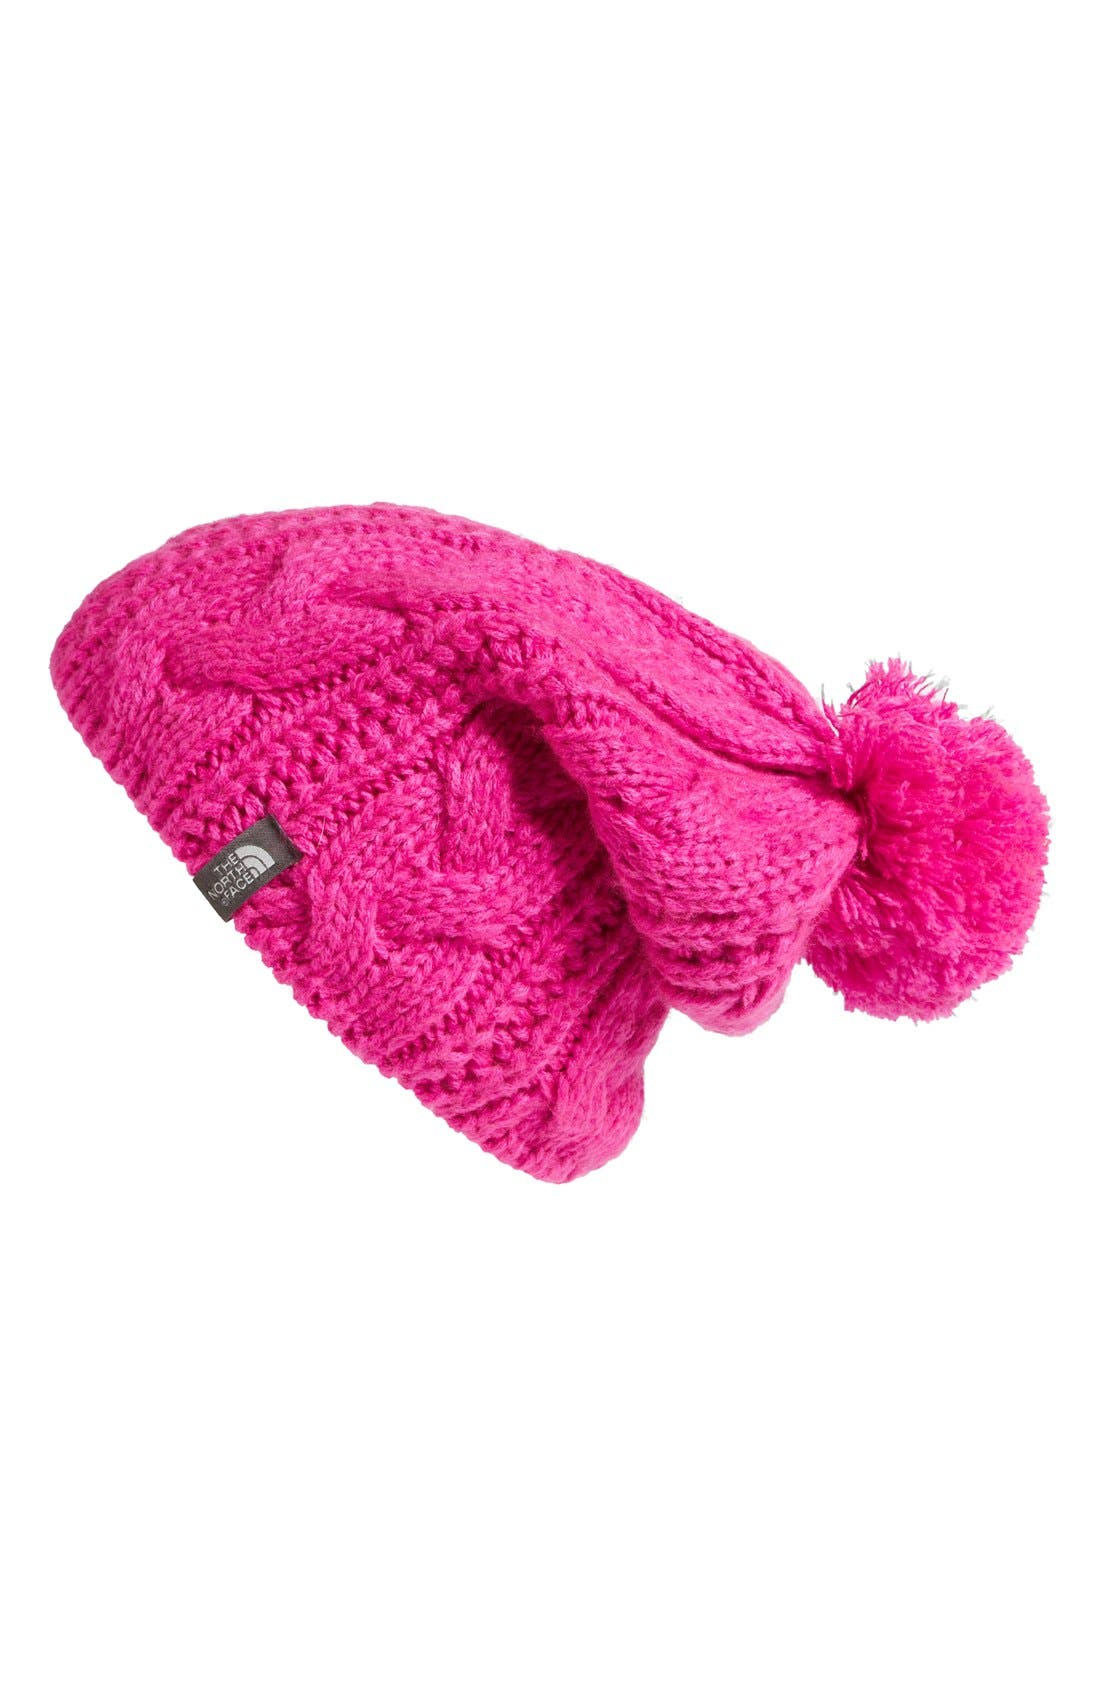 Alternate Image 1 Selected - The North Face 'Bigsby' Pompom Beanie